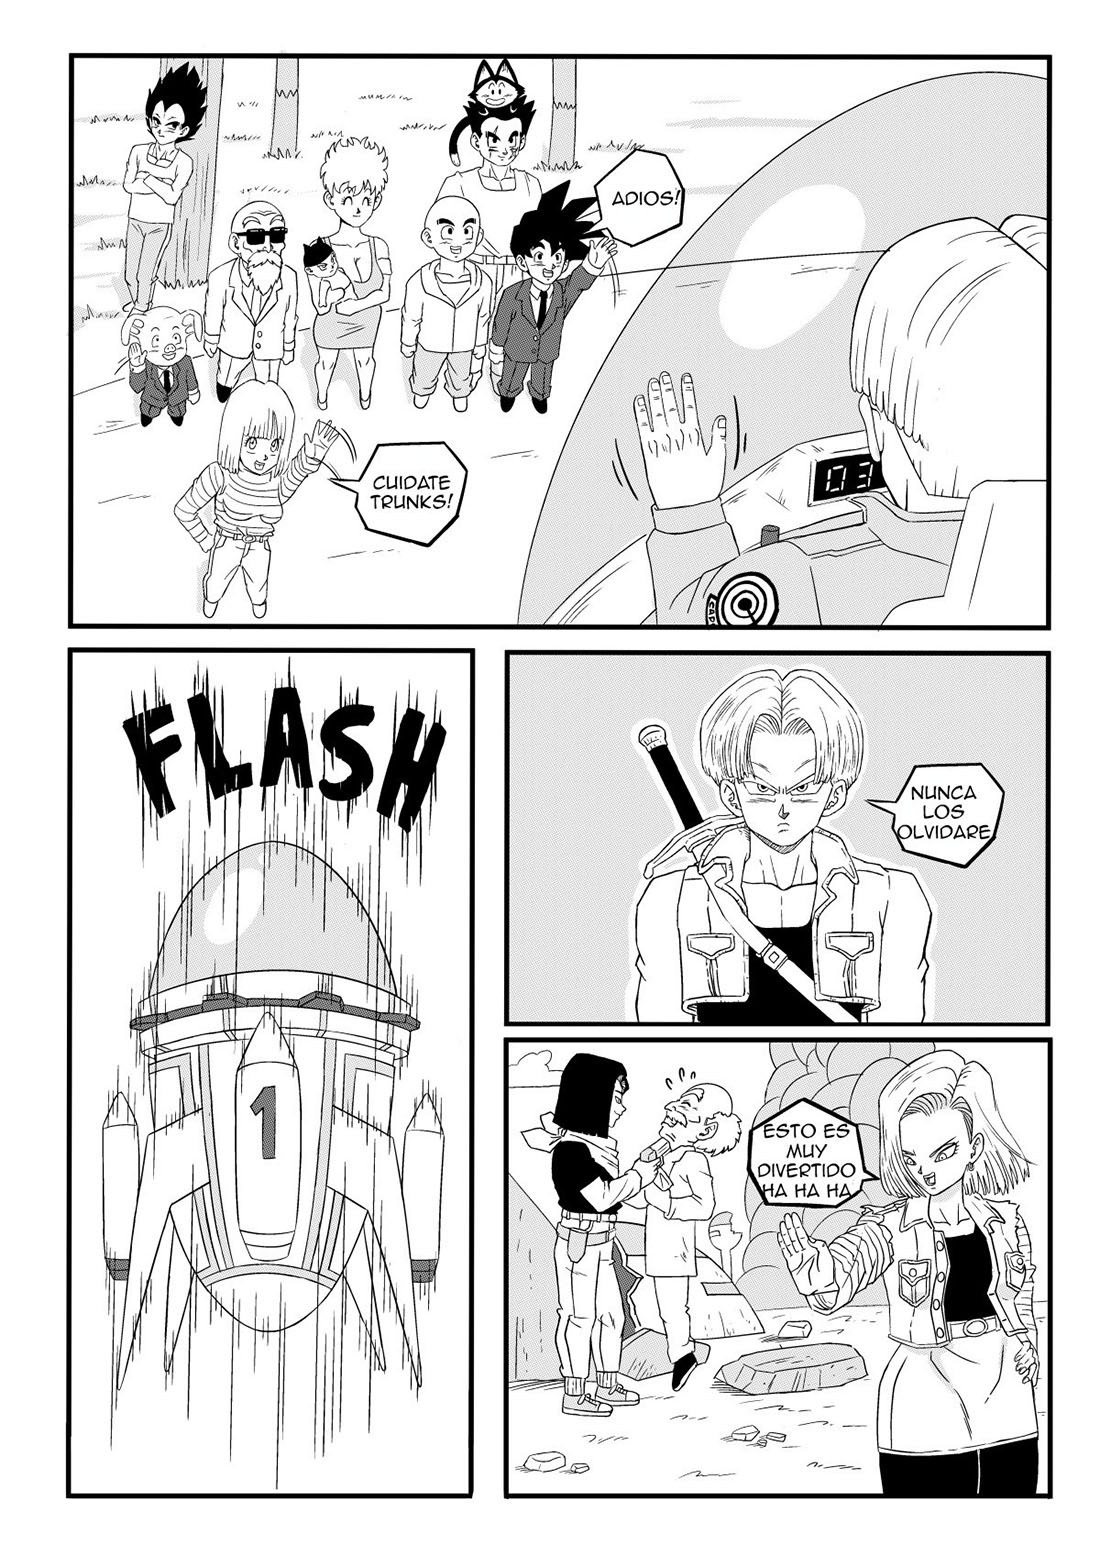 ANDROID 18 Stays in the FUTURE